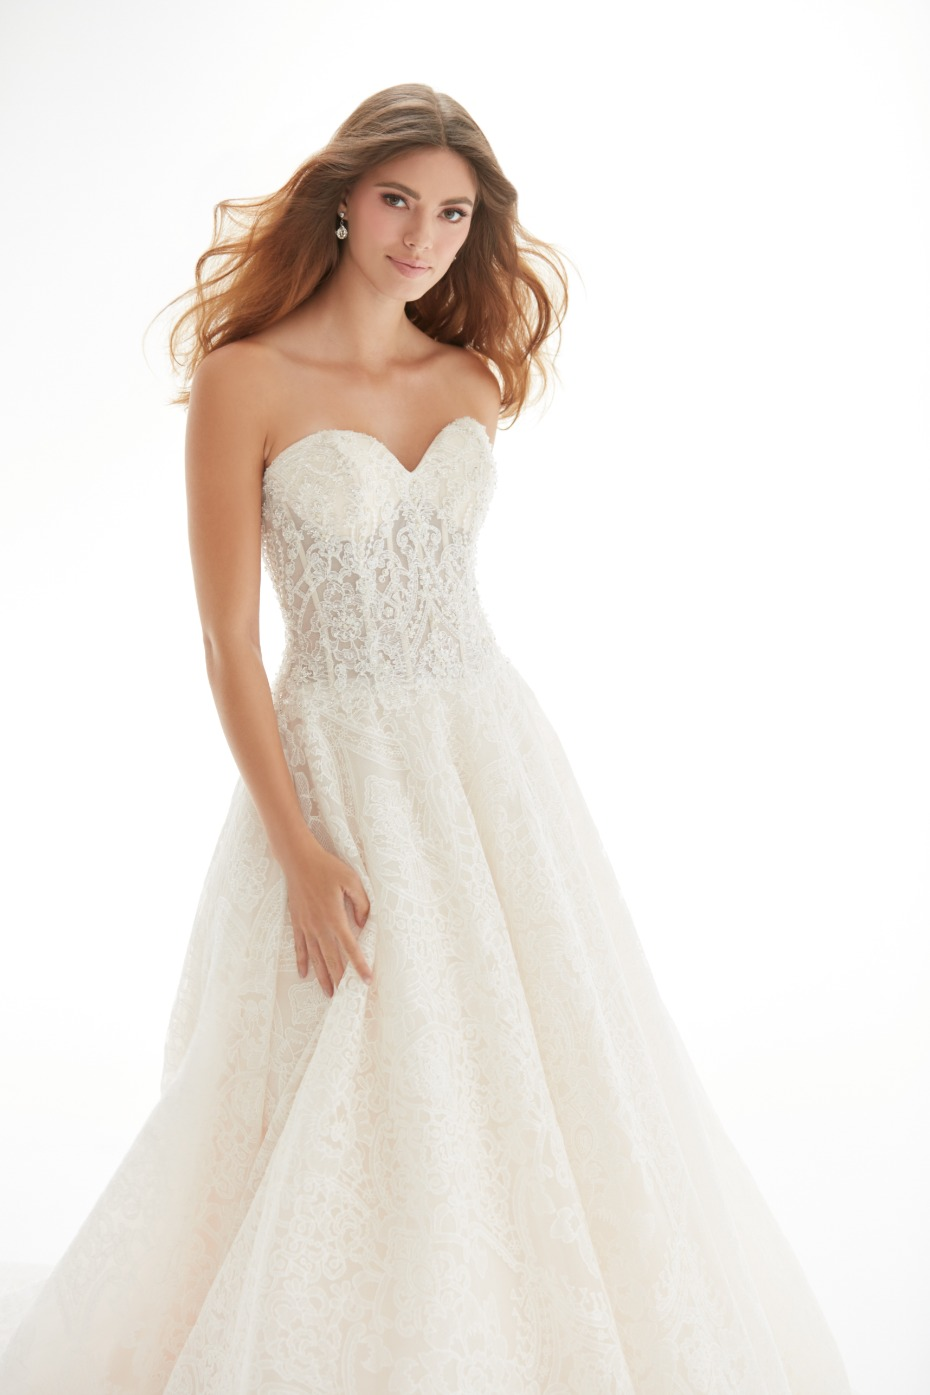 Lace gown from Allure Bridals Collection